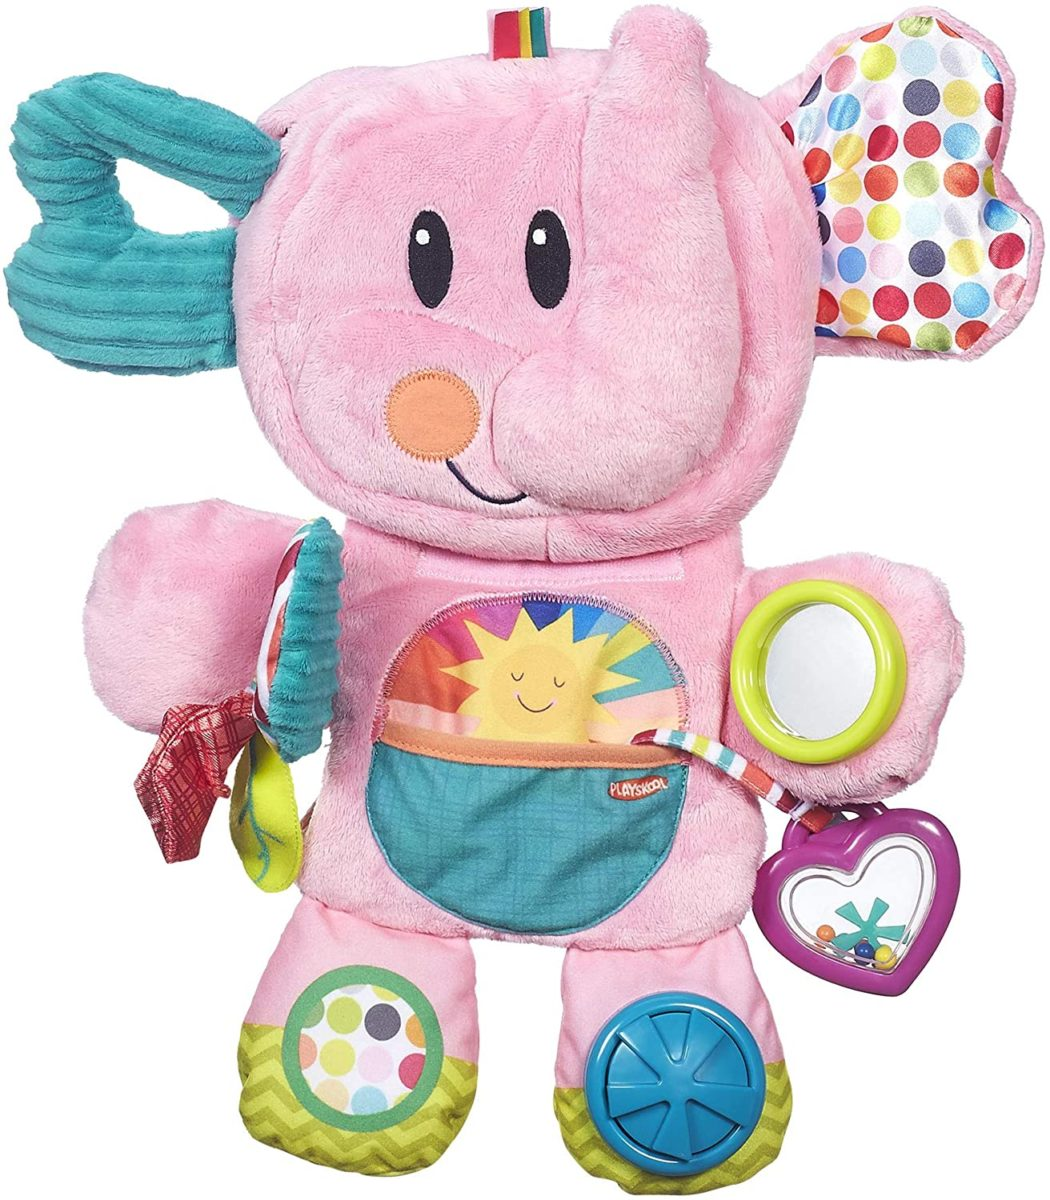 toys for babies: here are 35 gifts that help with a baby's early development | in this list, you will find 35 toys that any baby would love.